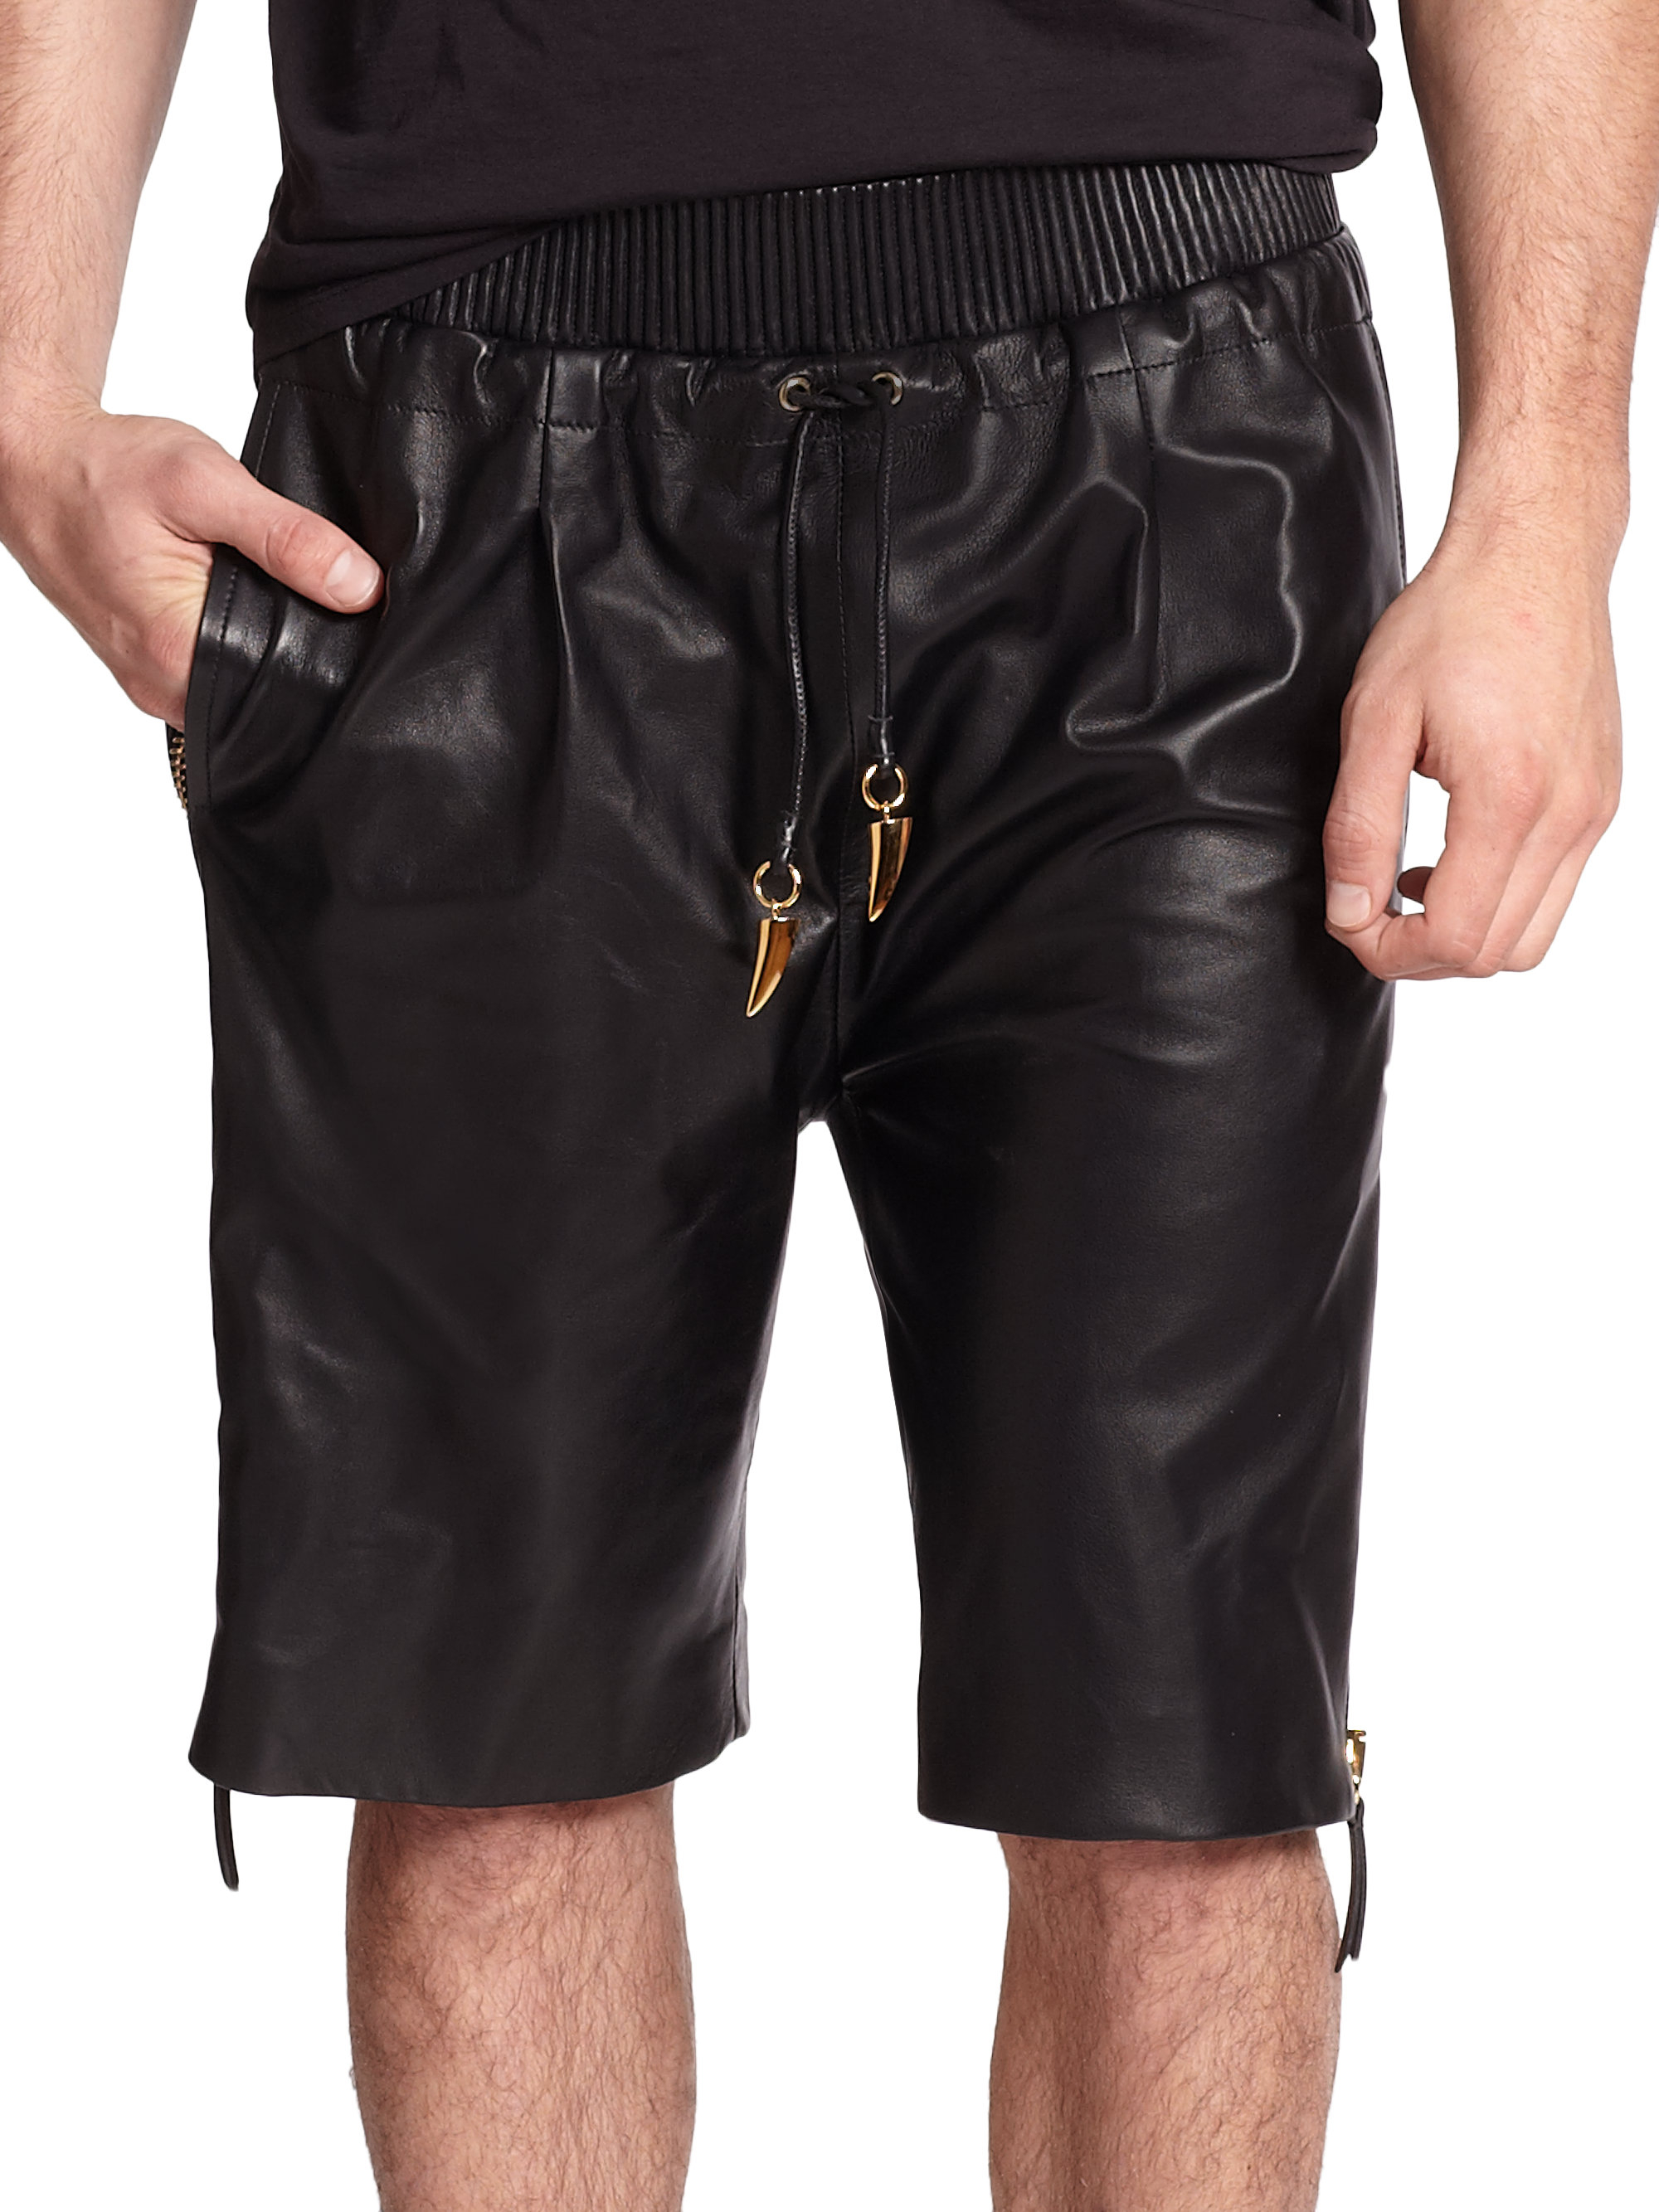 Shop for and buy mens black leather shorts online at Macy's. Find mens black leather shorts at Macy's.